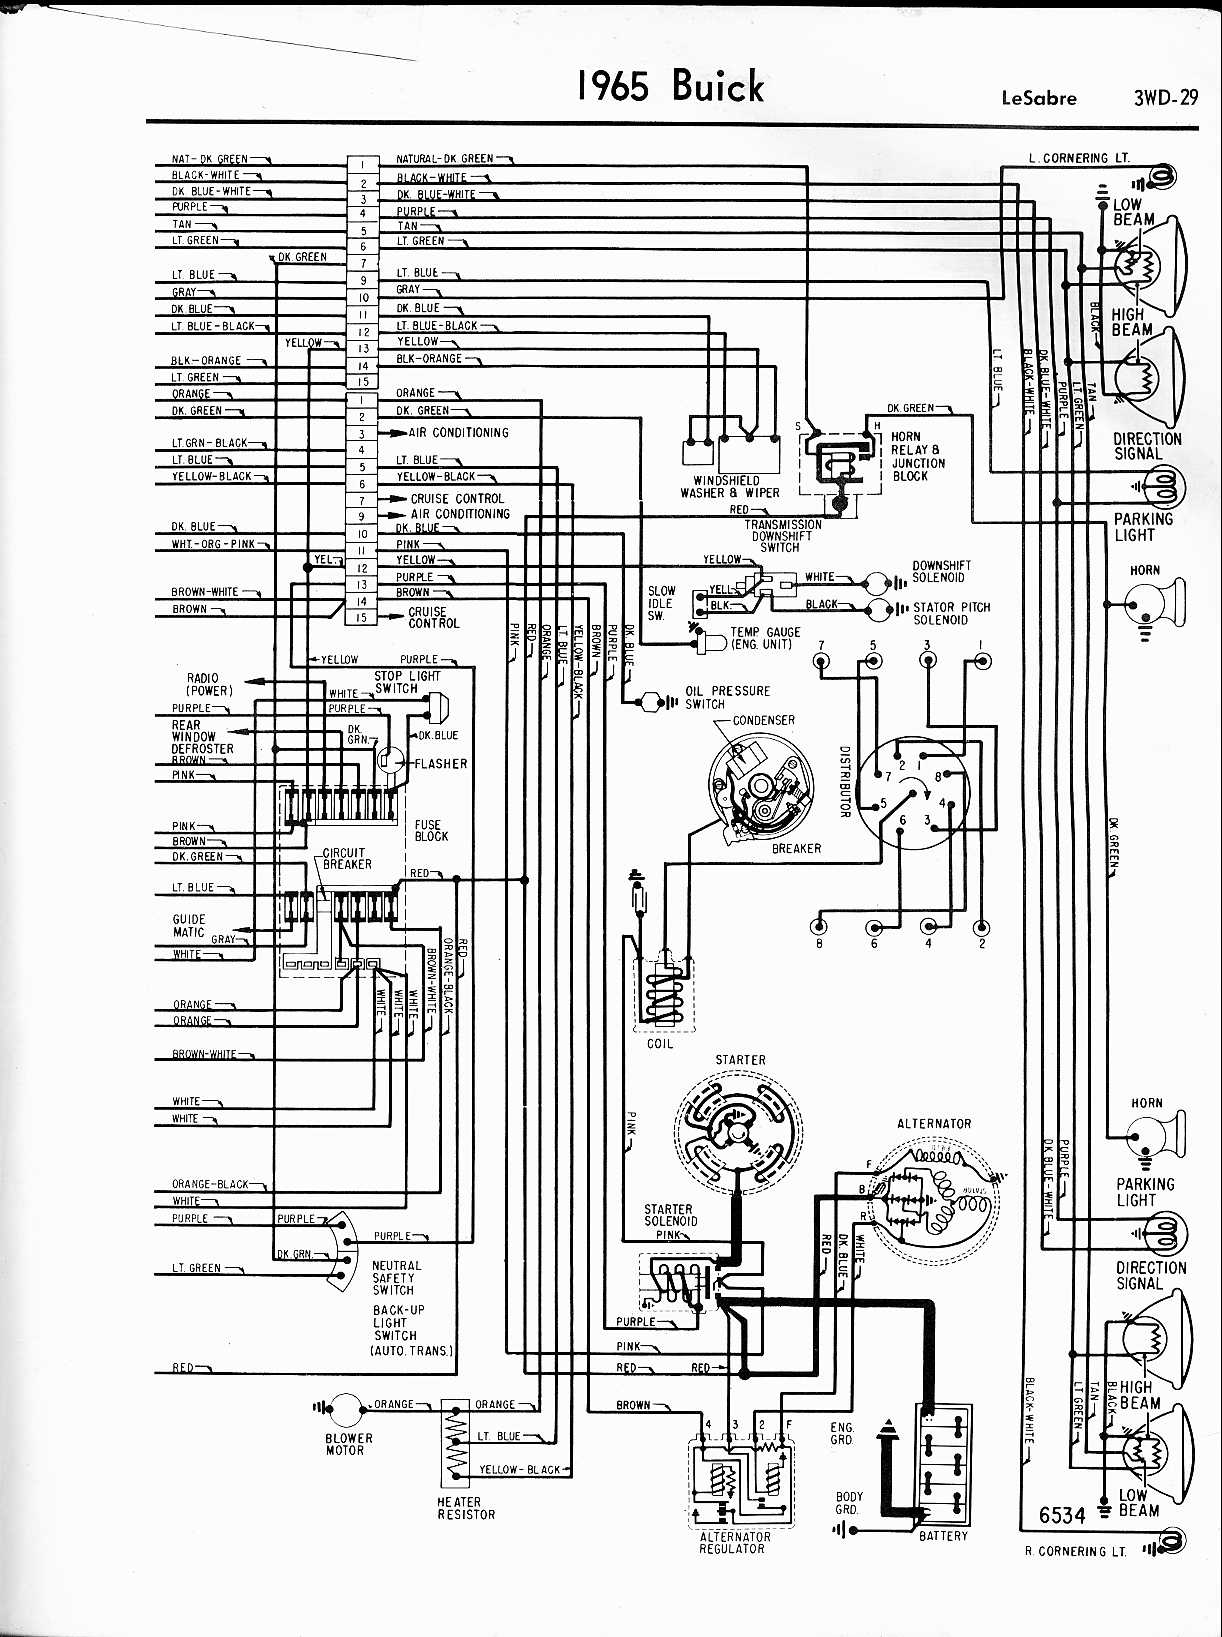 MWireBuic65_3WD 029 buick wiring diagrams 1957 1965 95 buick lesabre radio wiring diagram at edmiracle.co